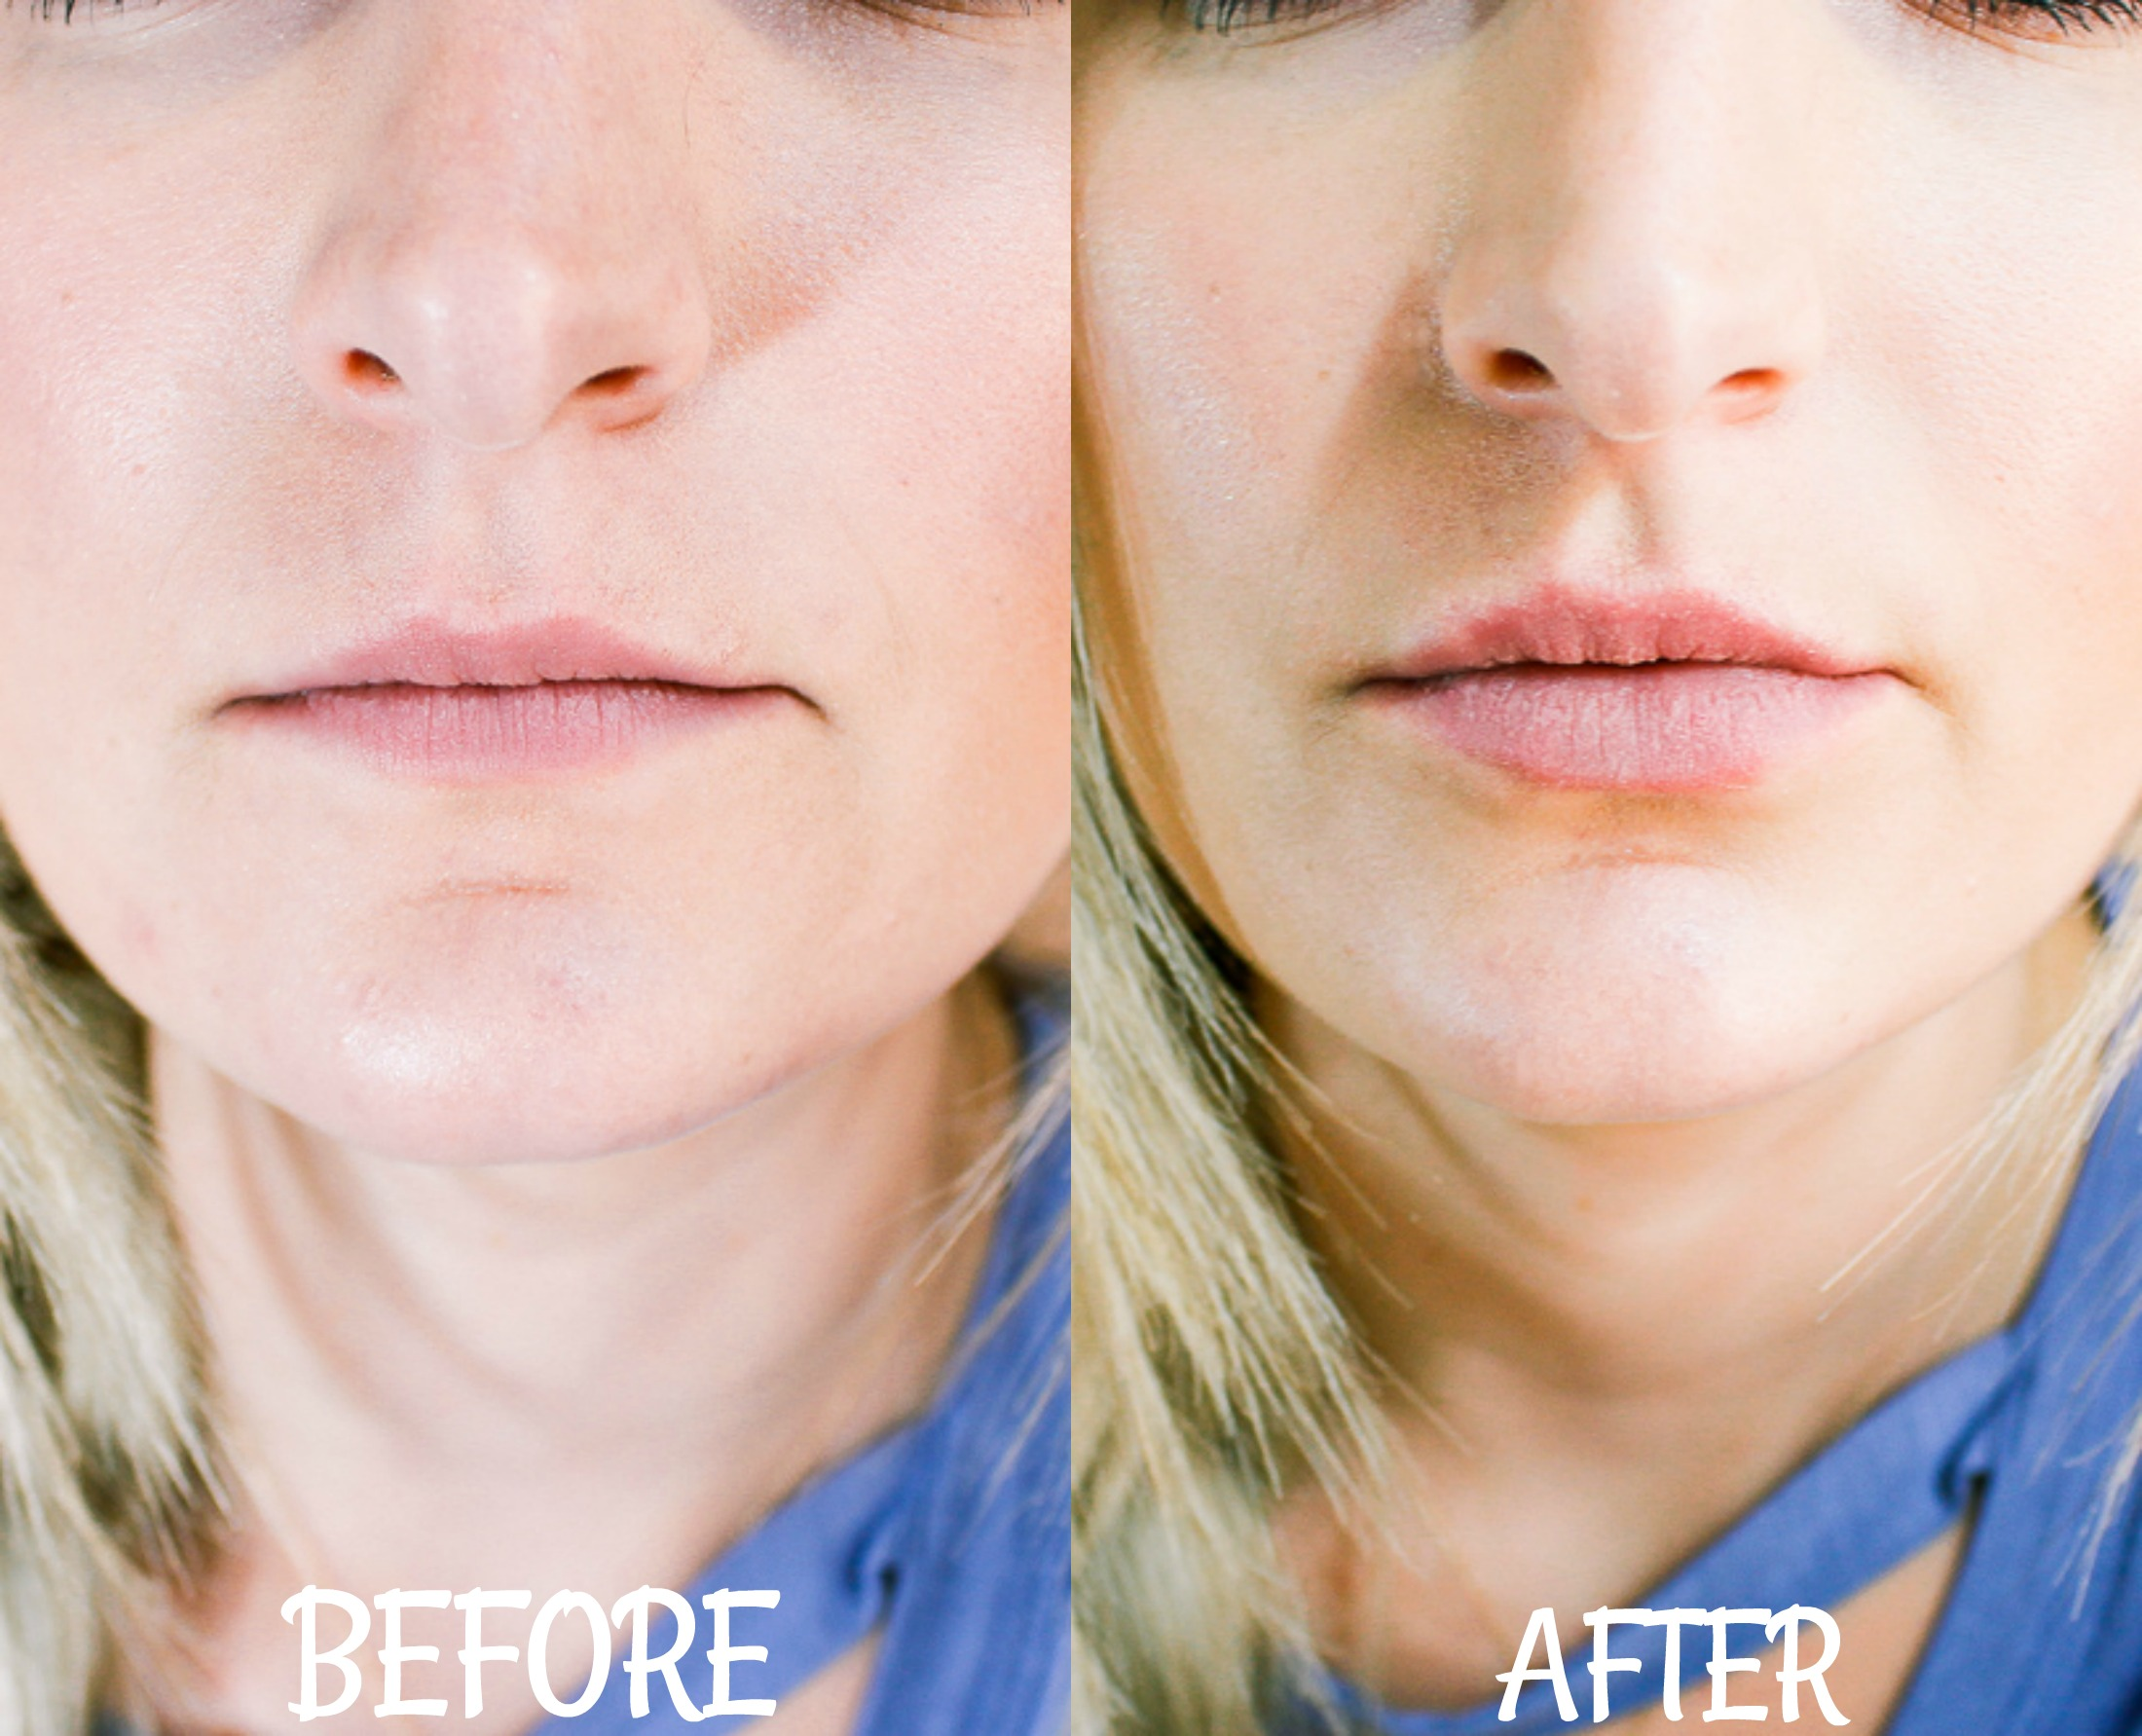 Before/After PMD Kiss Review | Audrey Madison Stowe lifestyle and fashion blogger